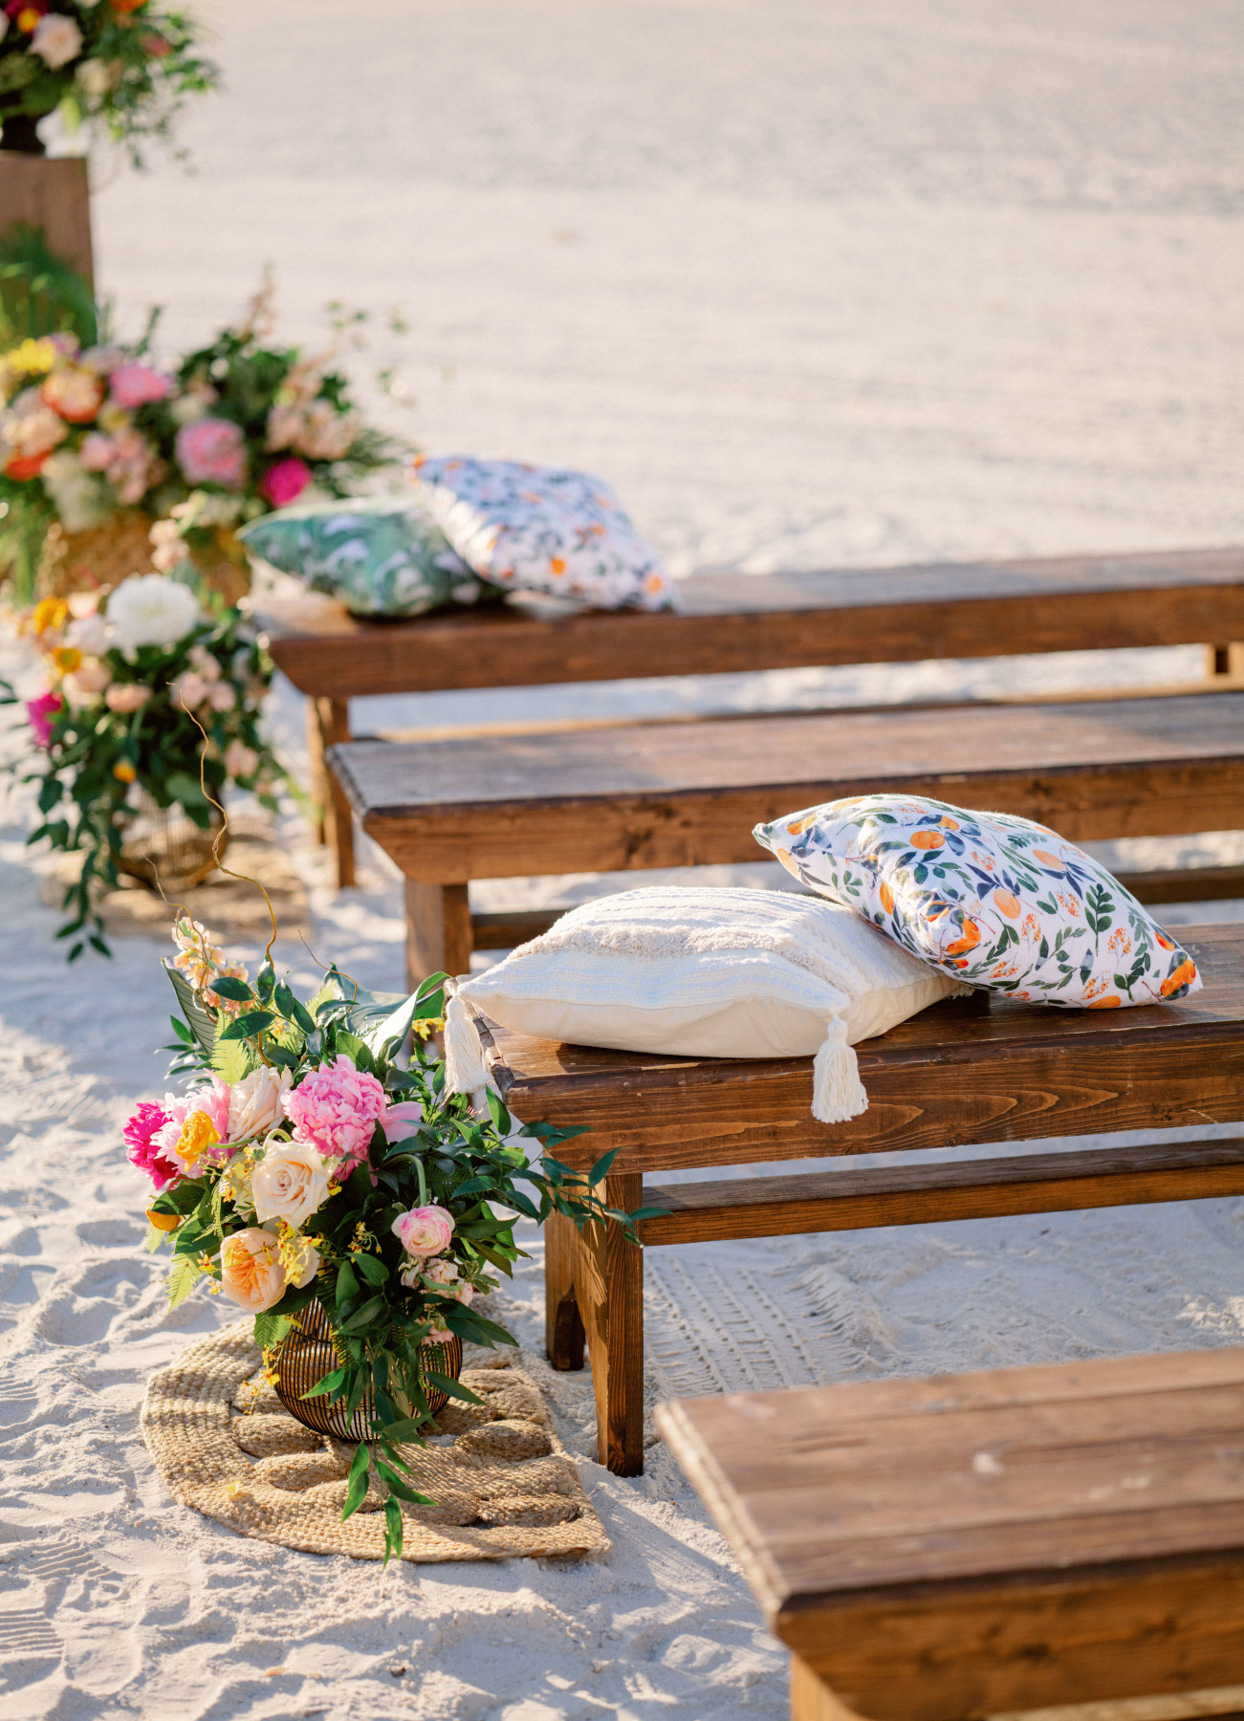 pillows on wooden benches for wedding ceremony